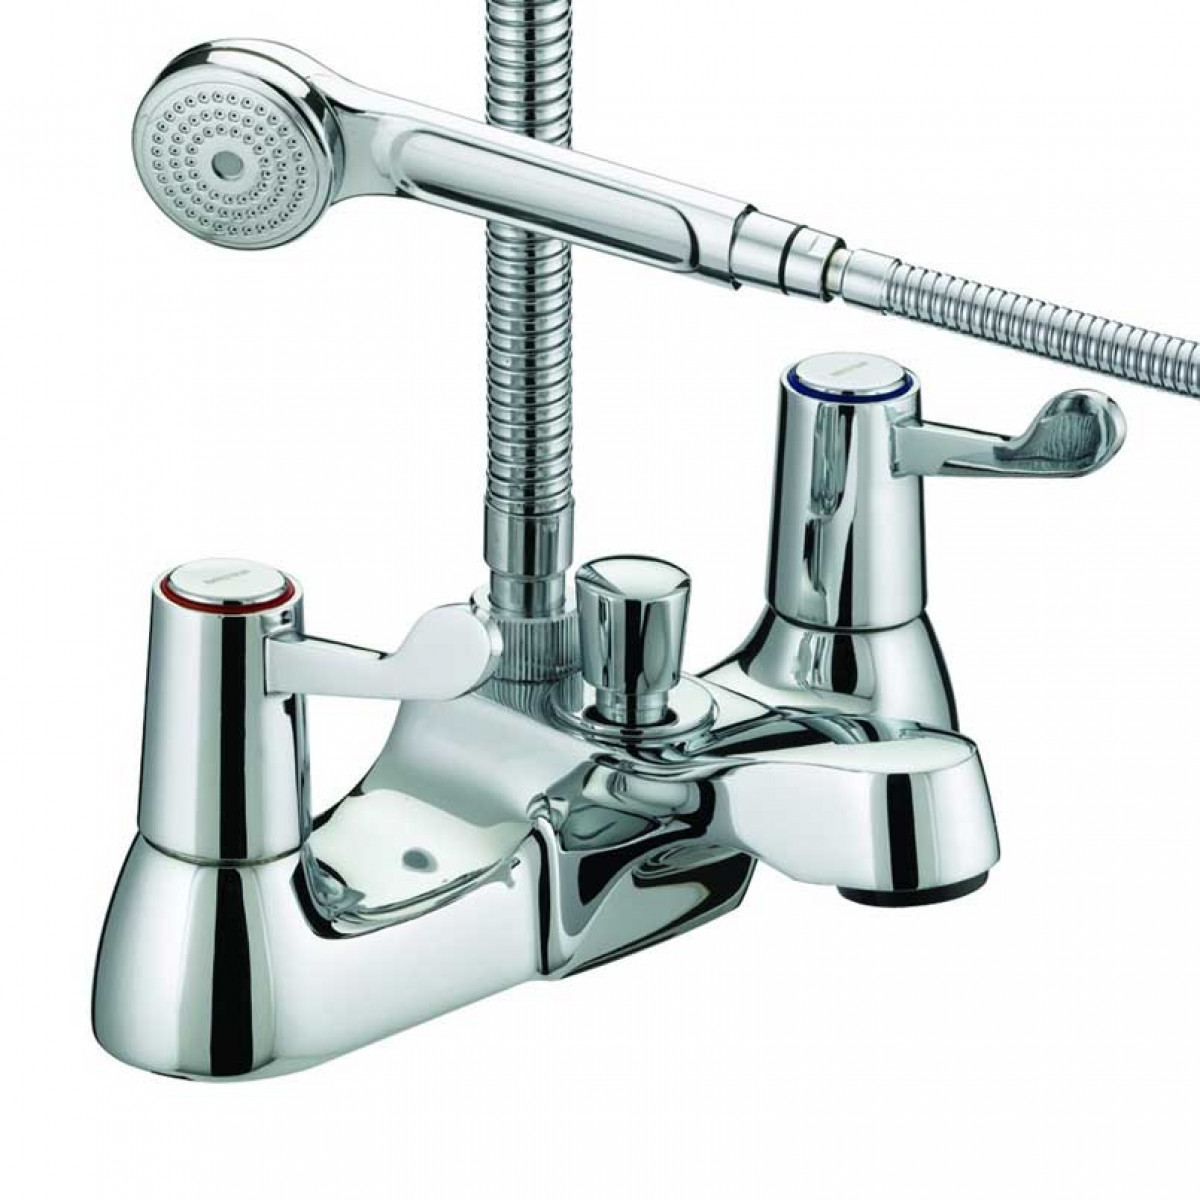 Bristan Value Lever Bath Shower Mixer, Chrome Plated With